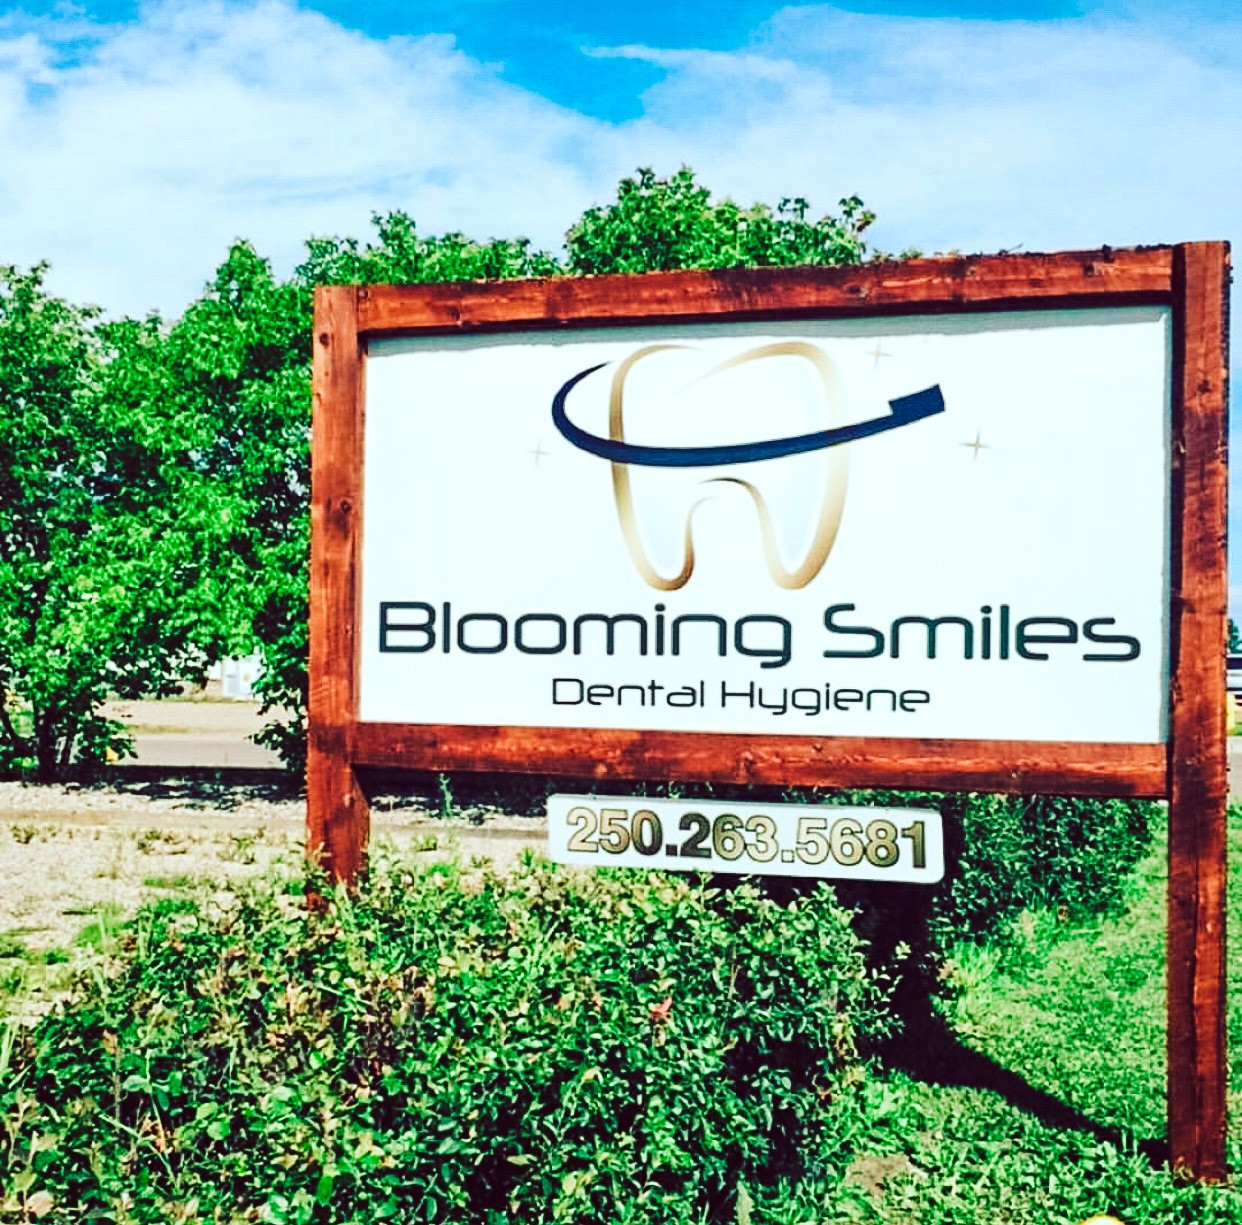 Blooming smiles roadside signboard